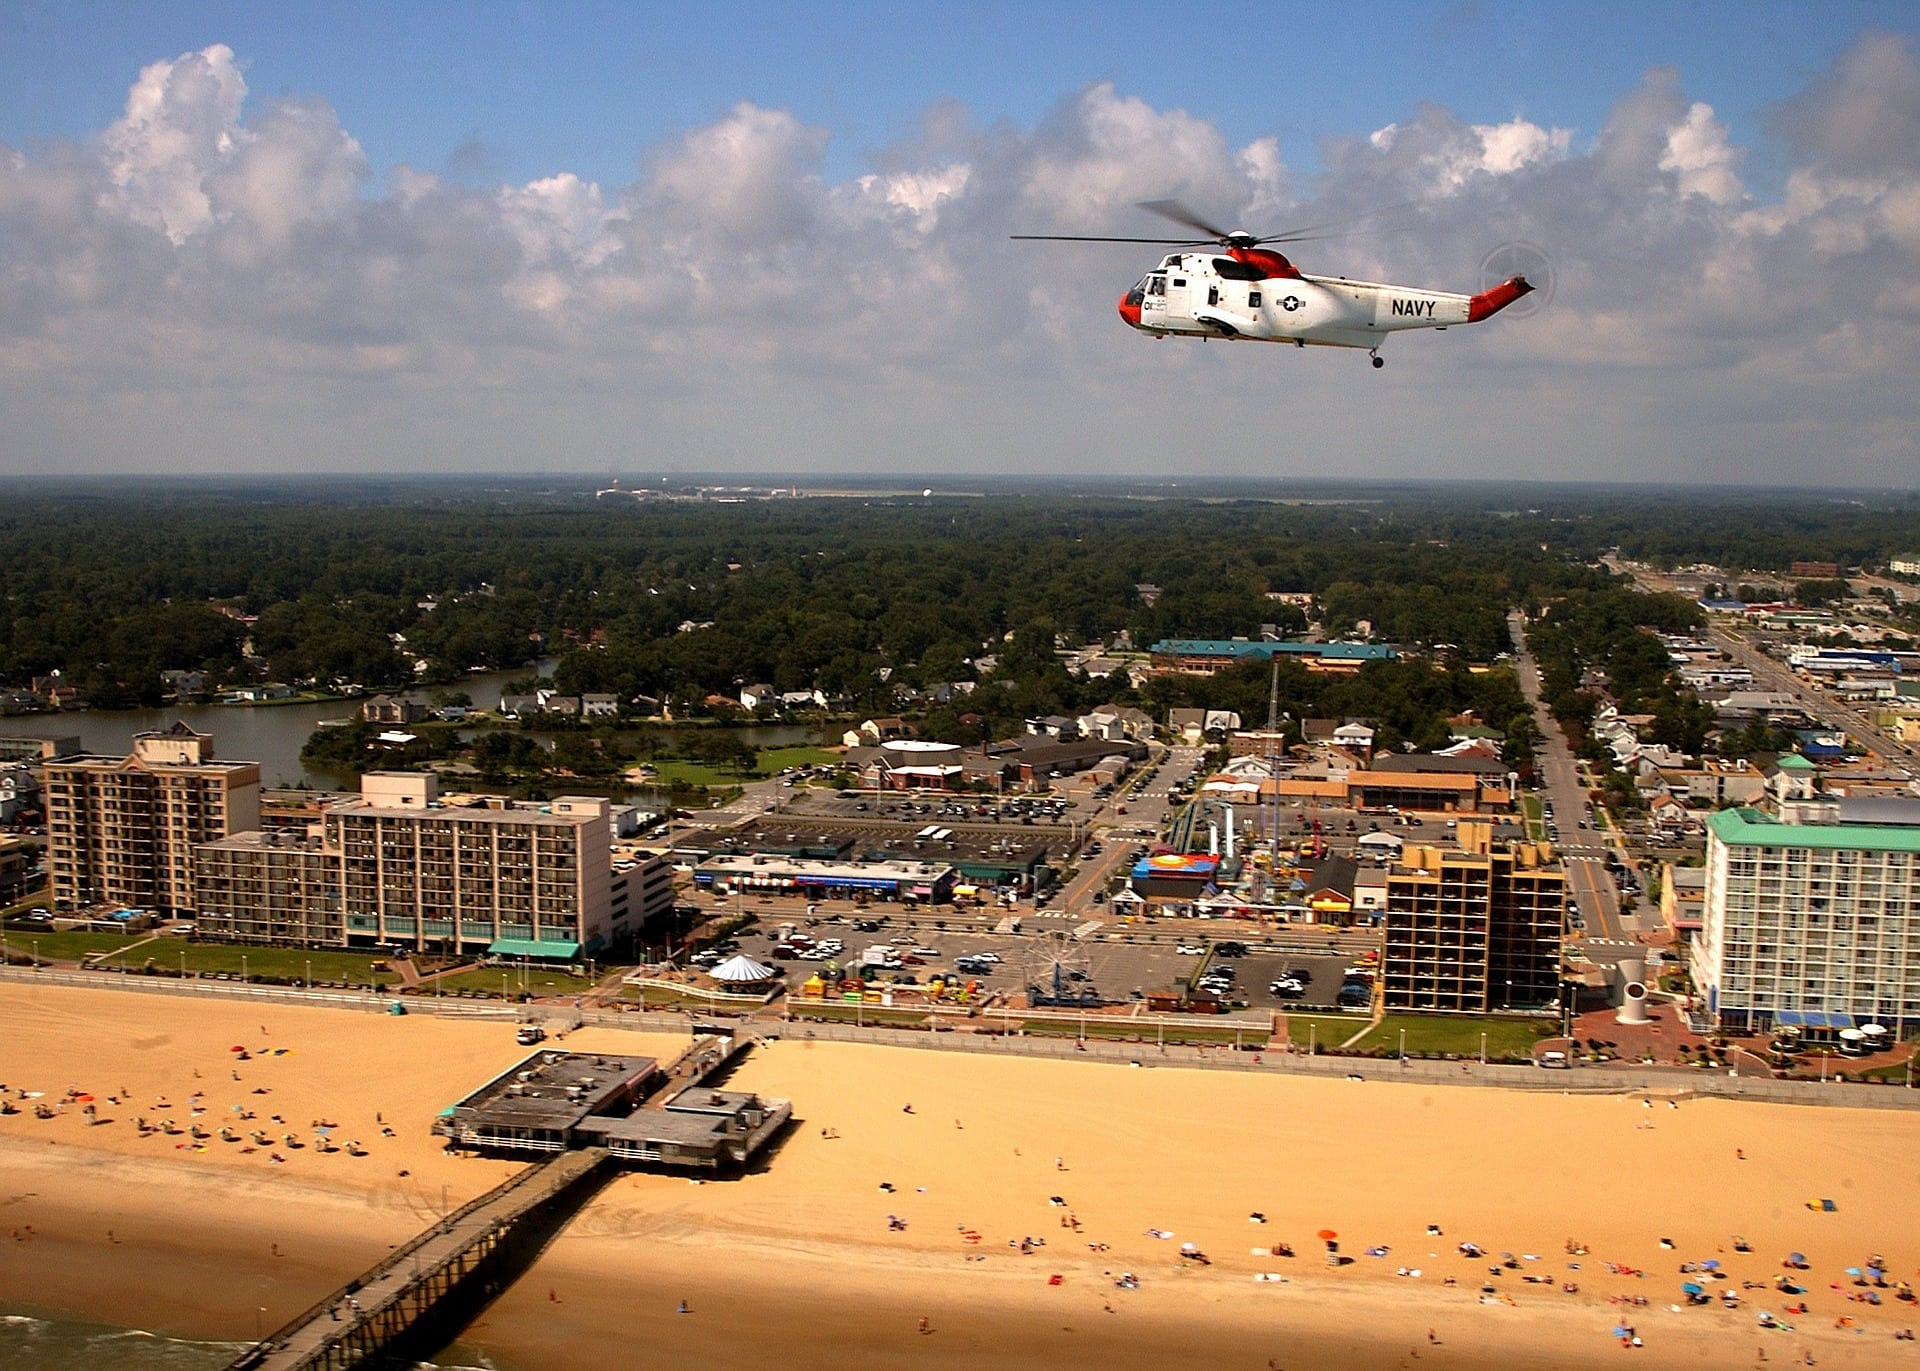 Living in Virginia Beach - What is it like - Pros and Cons